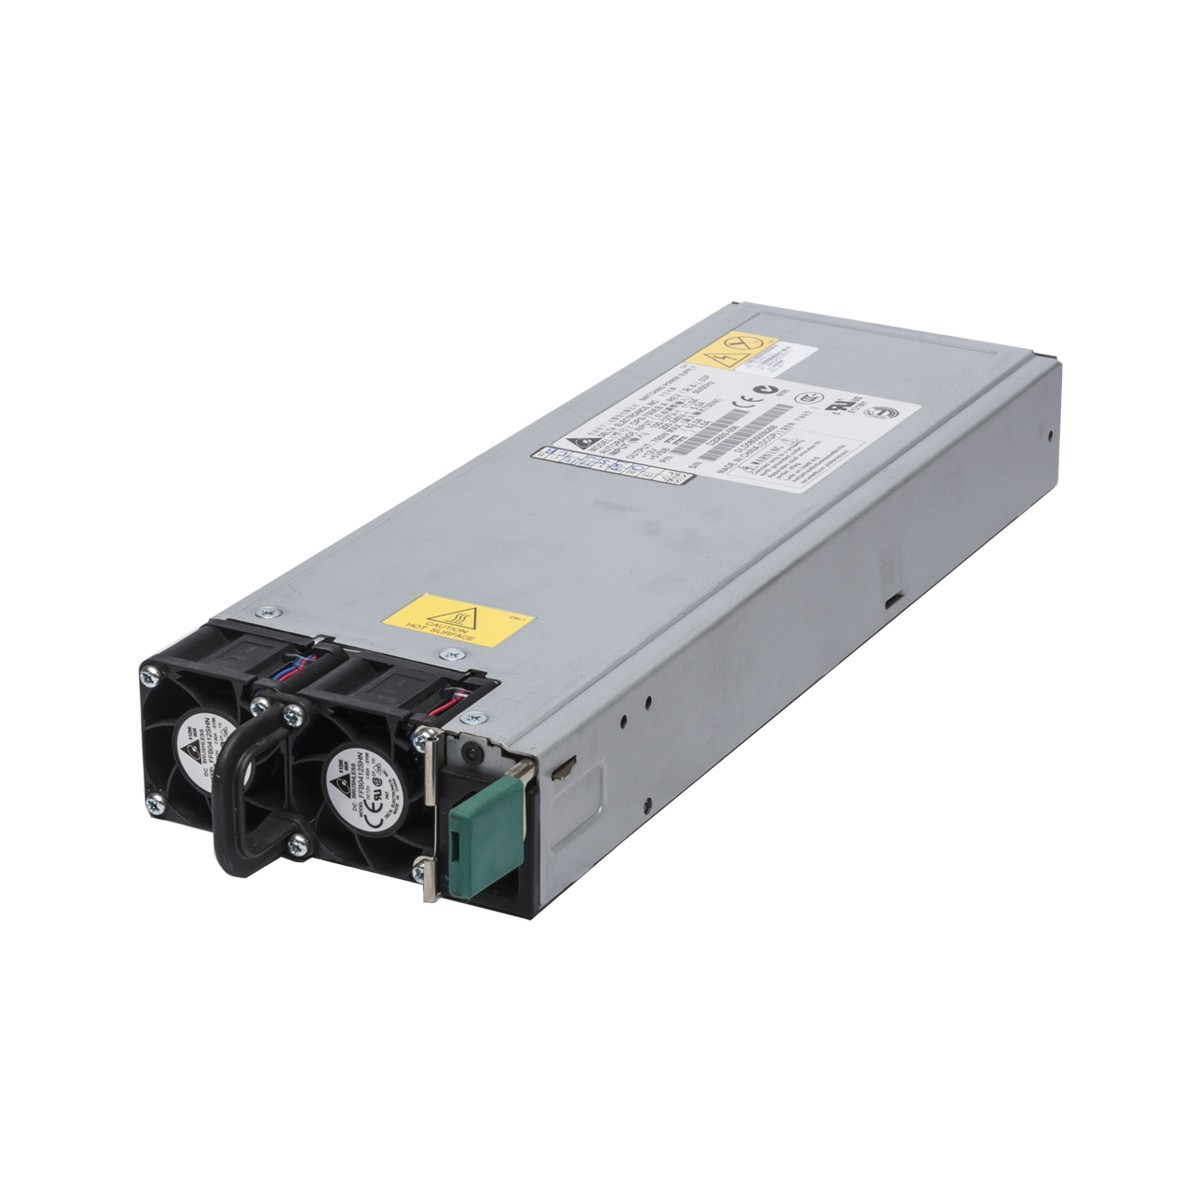 Intel 750W Redundant Power Supply D20850-006